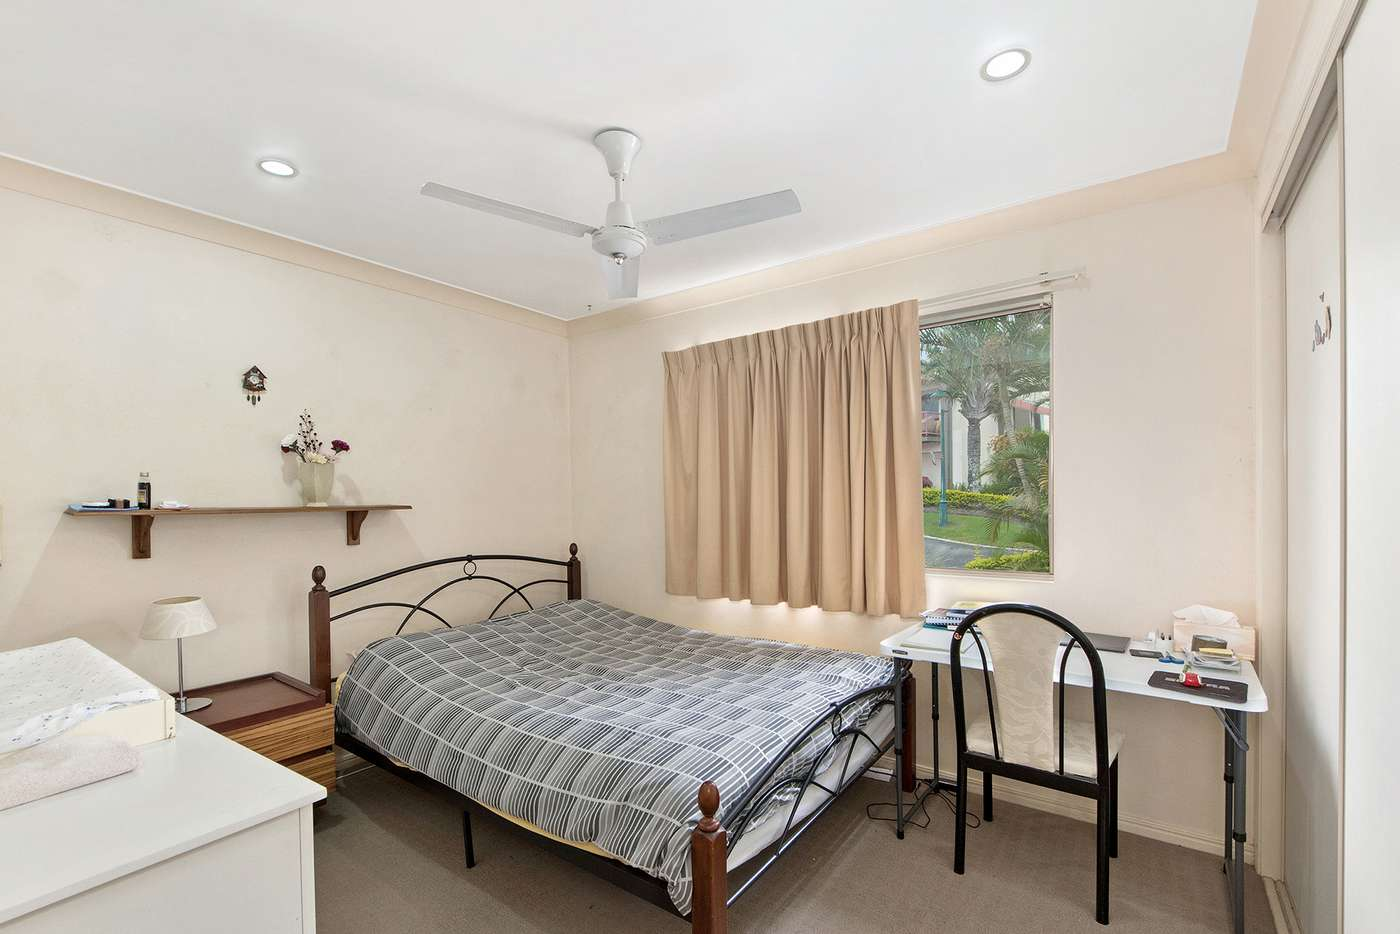 Seventh view of Homely house listing, 8/3 Fortuna Place, Parkwood QLD 4214